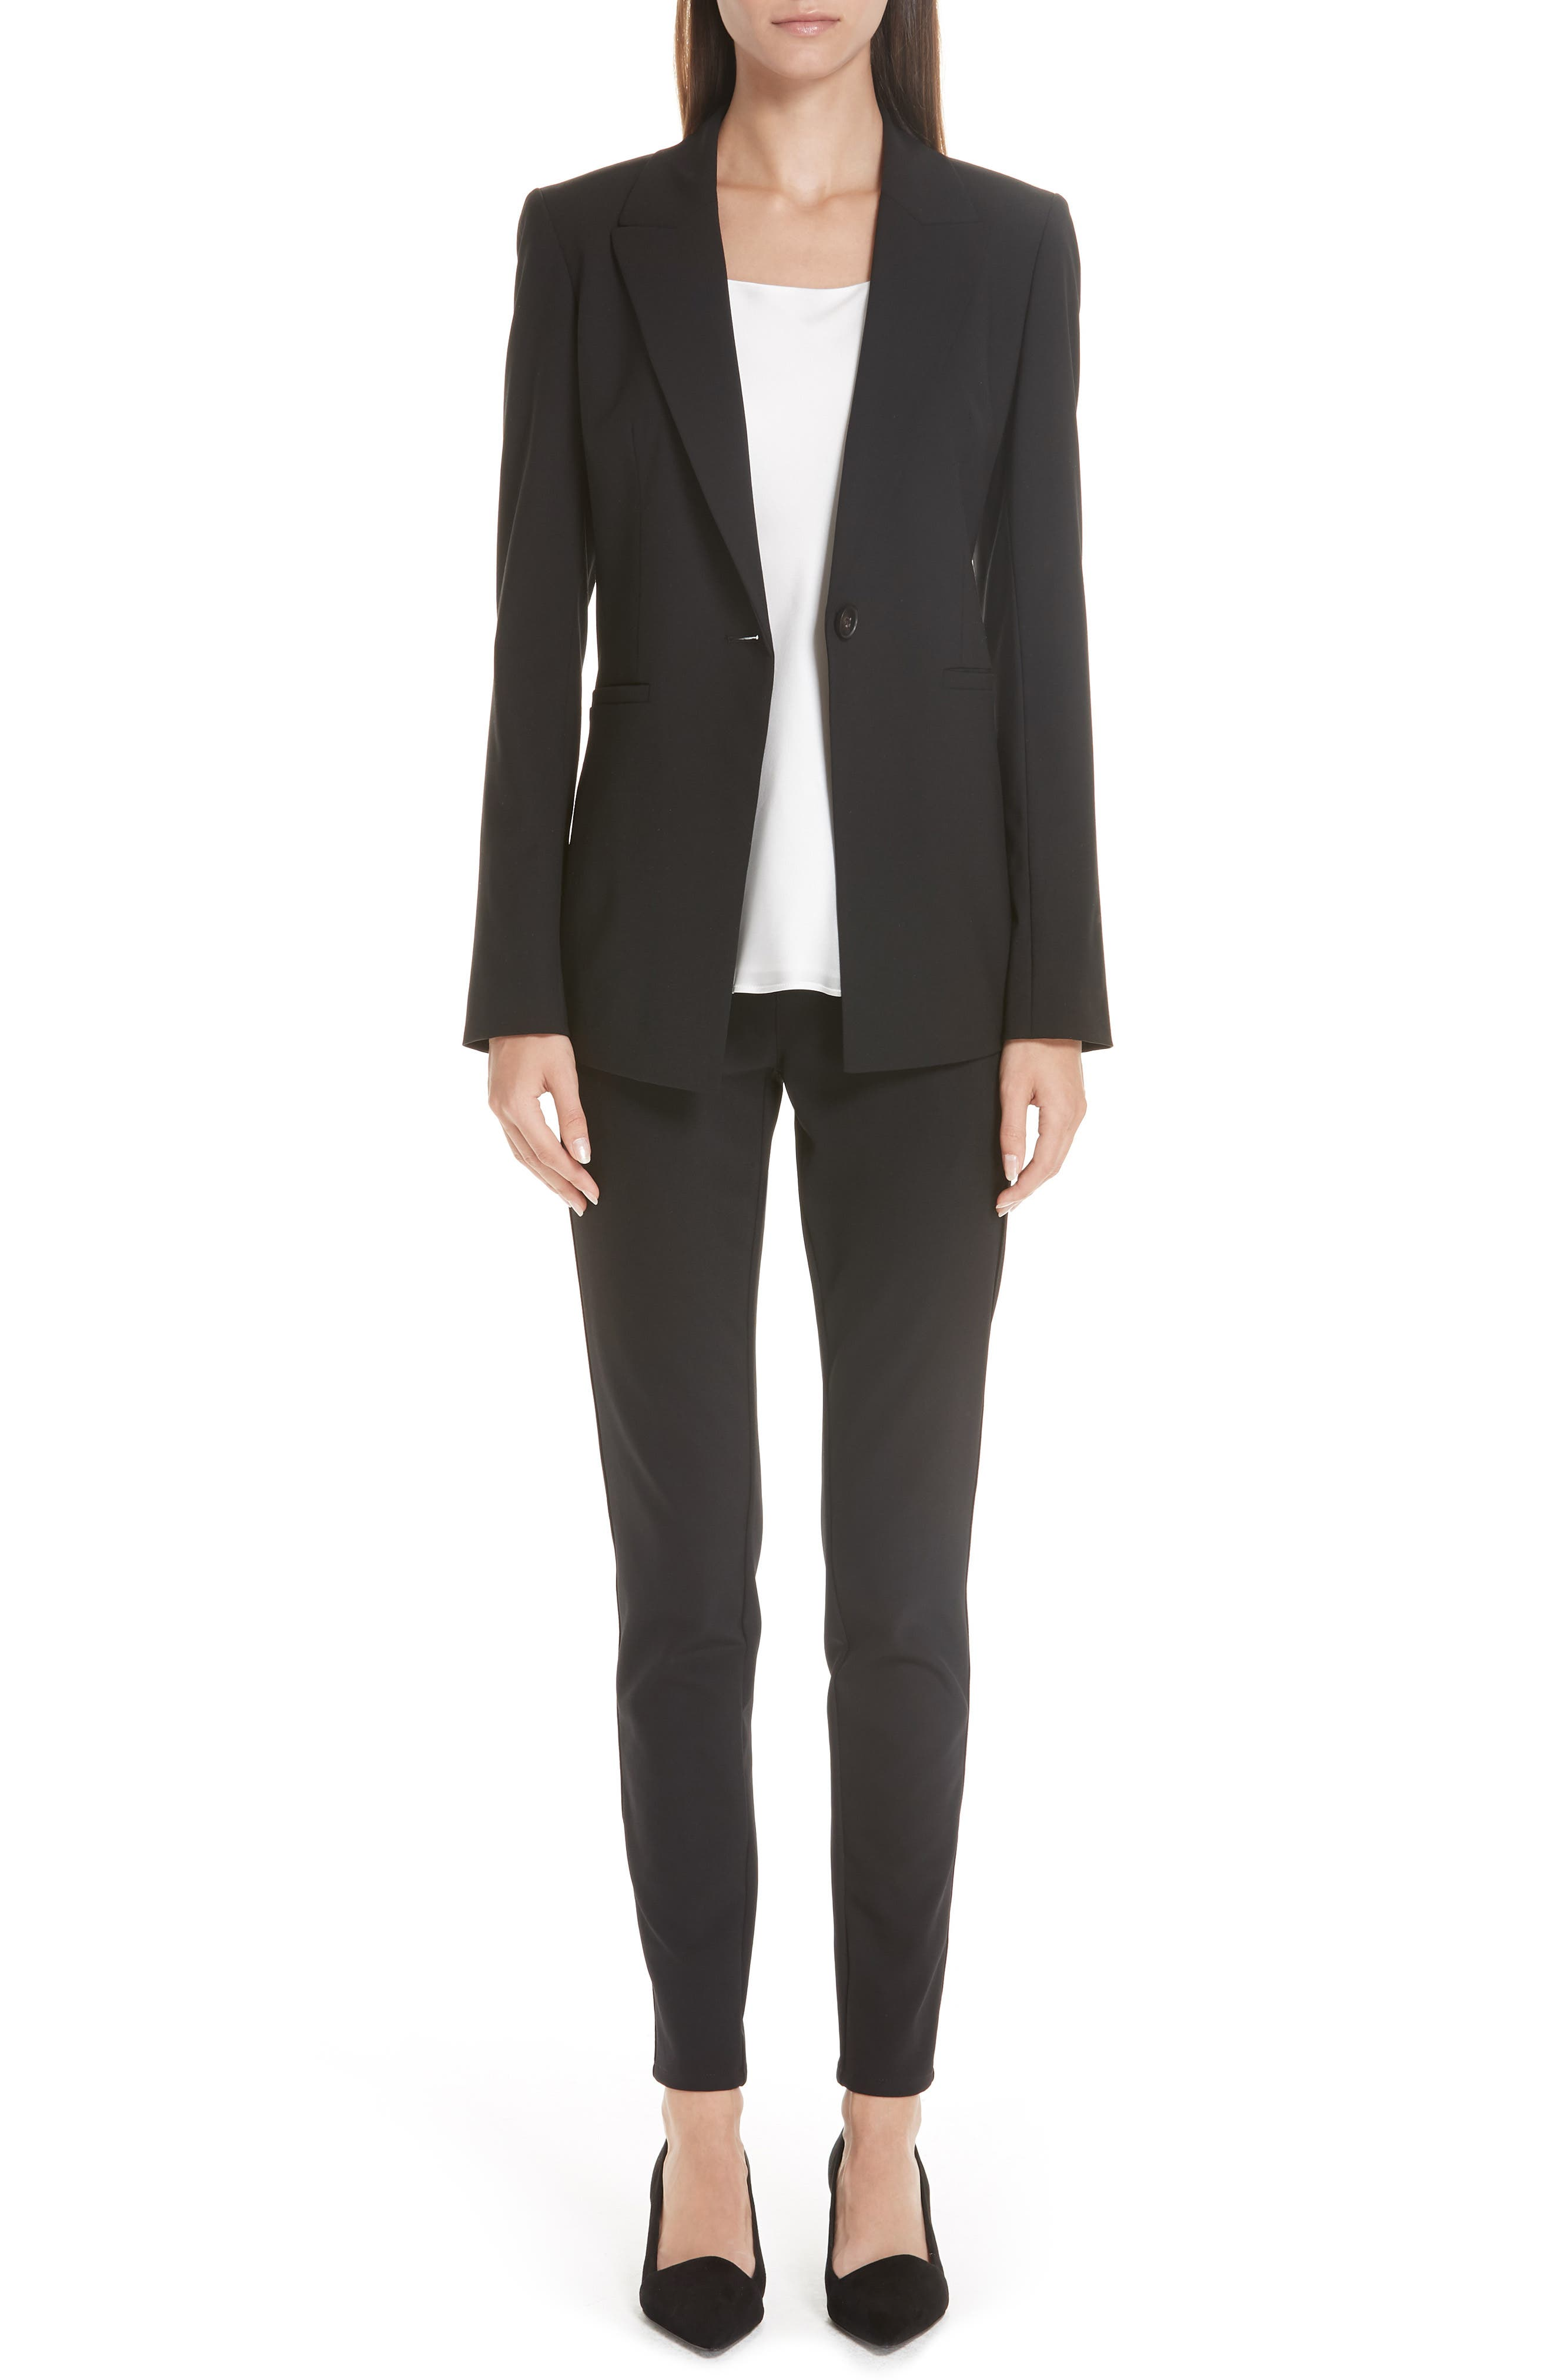 LAFAYETTE 148 NEW YORK, Charice Stretch Wool Jacket, Alternate thumbnail 9, color, BLACK